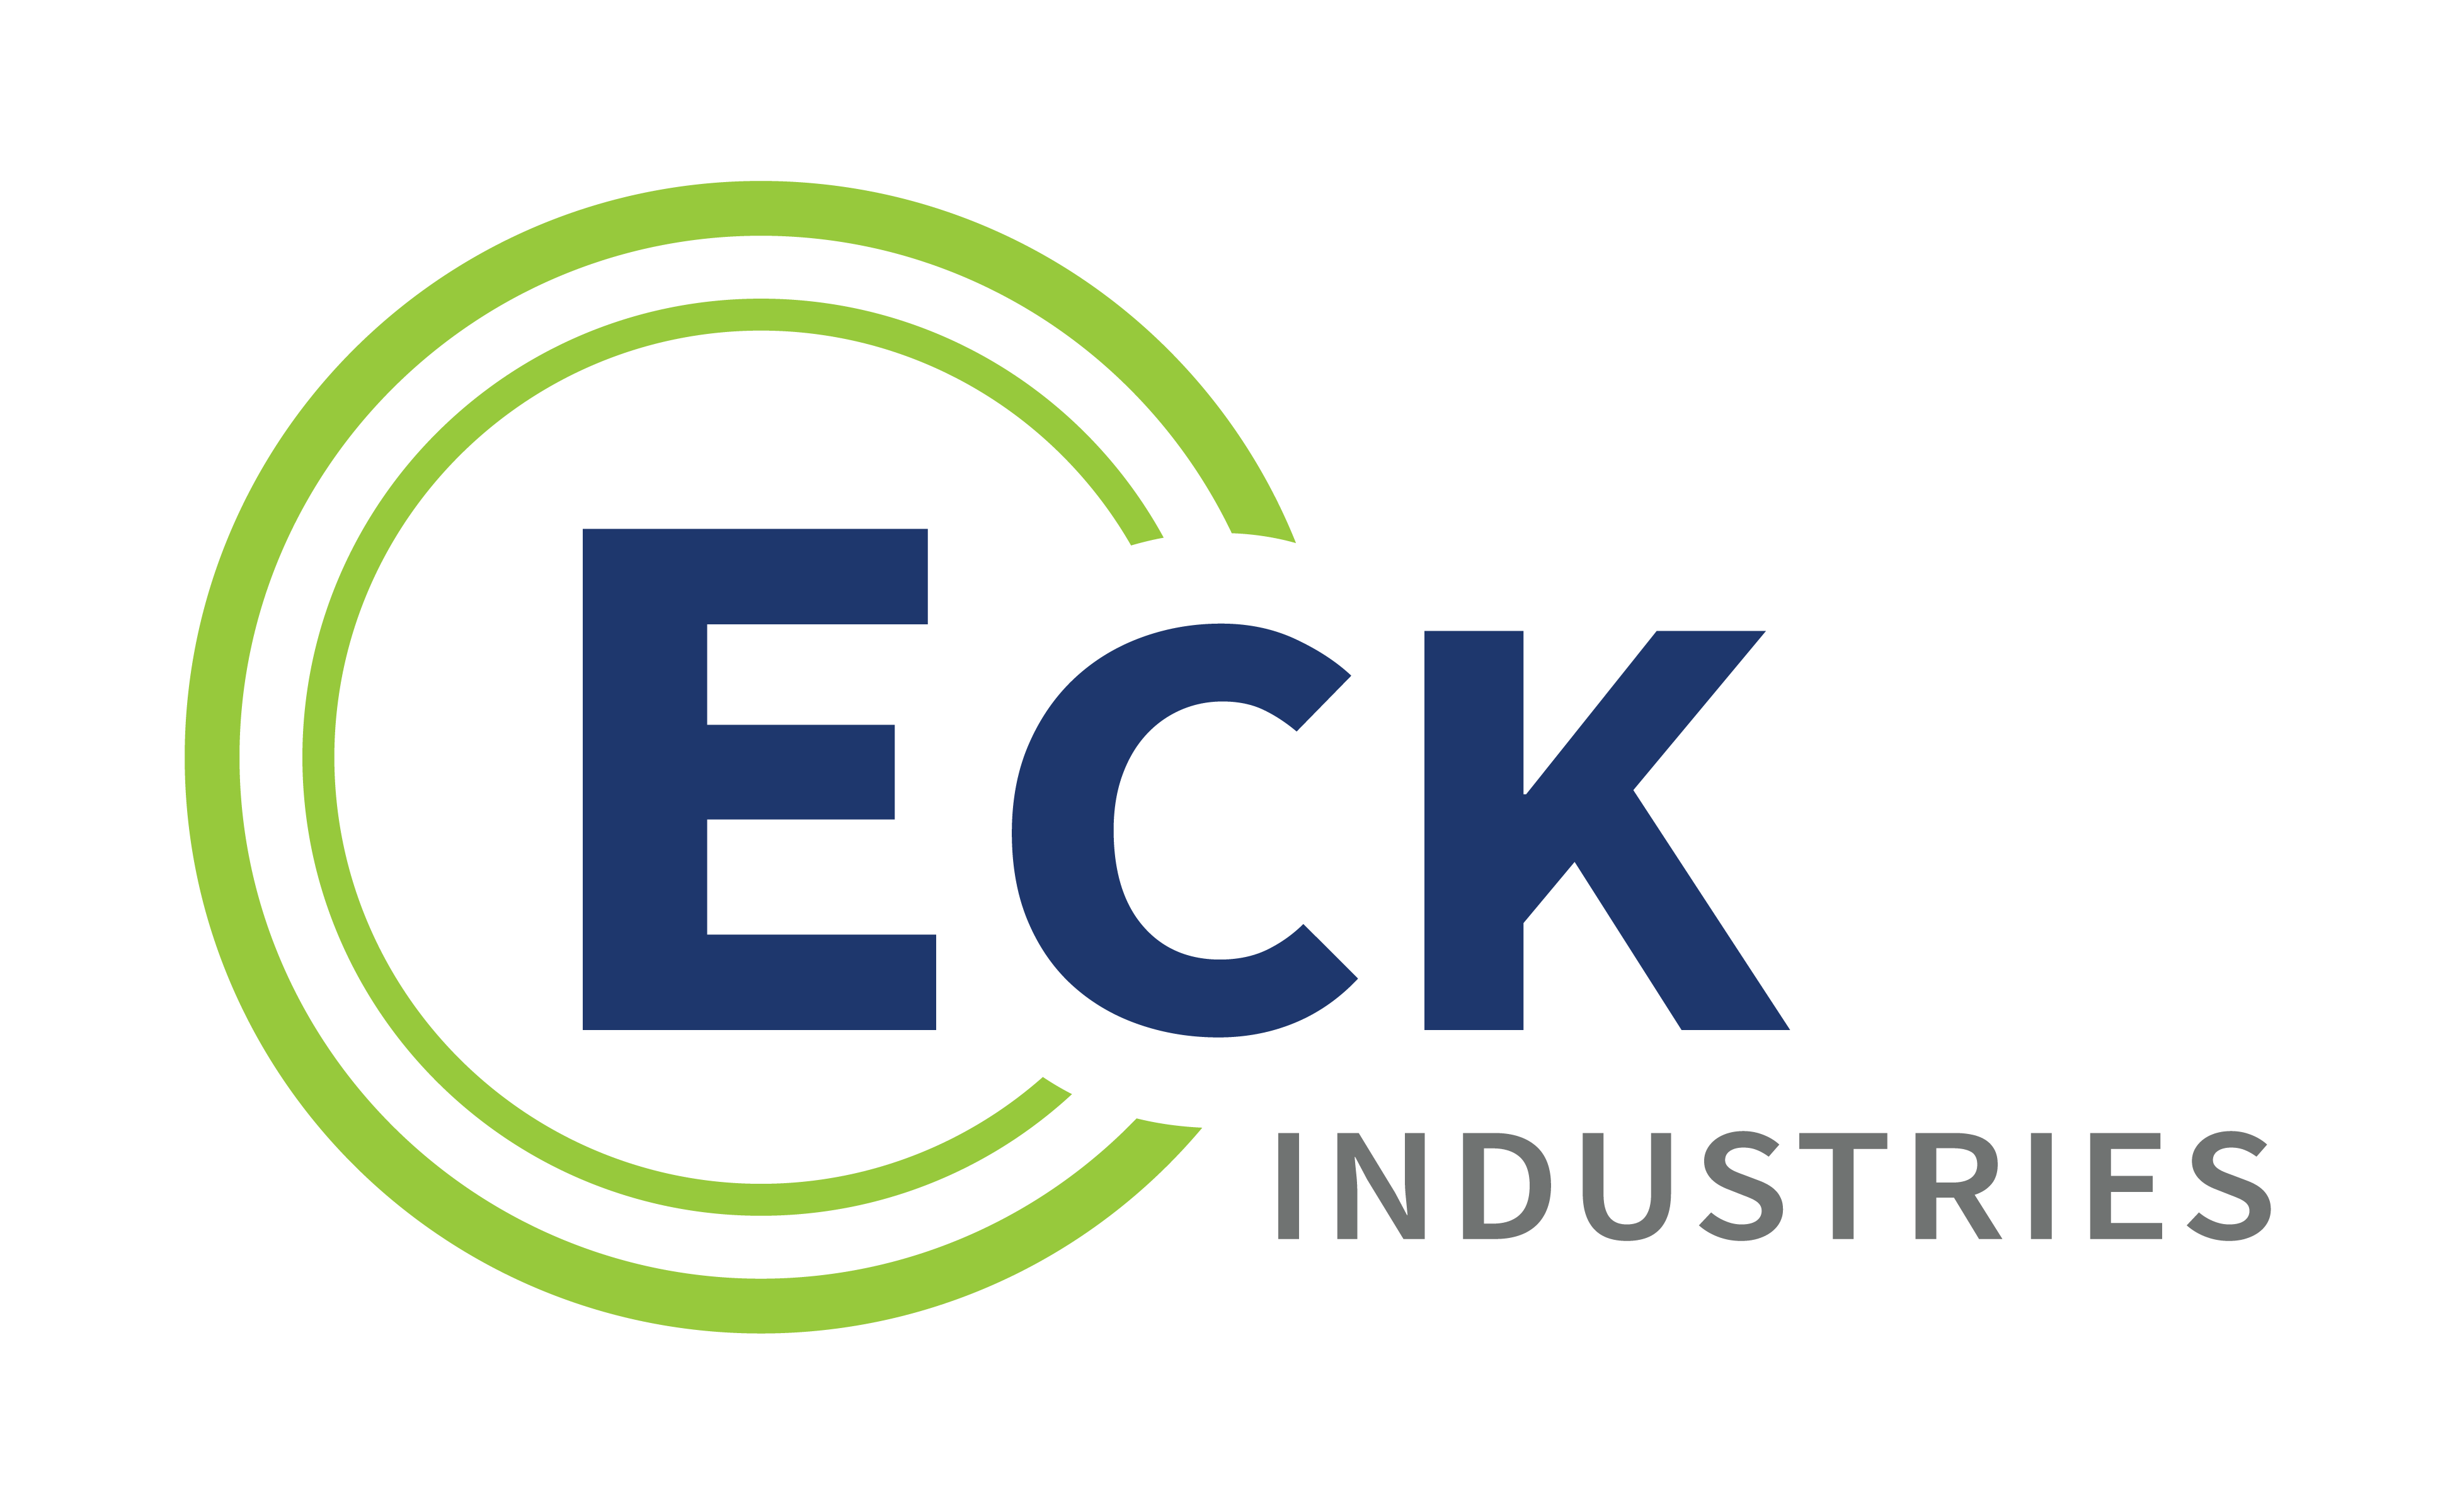 Eck Industries logo